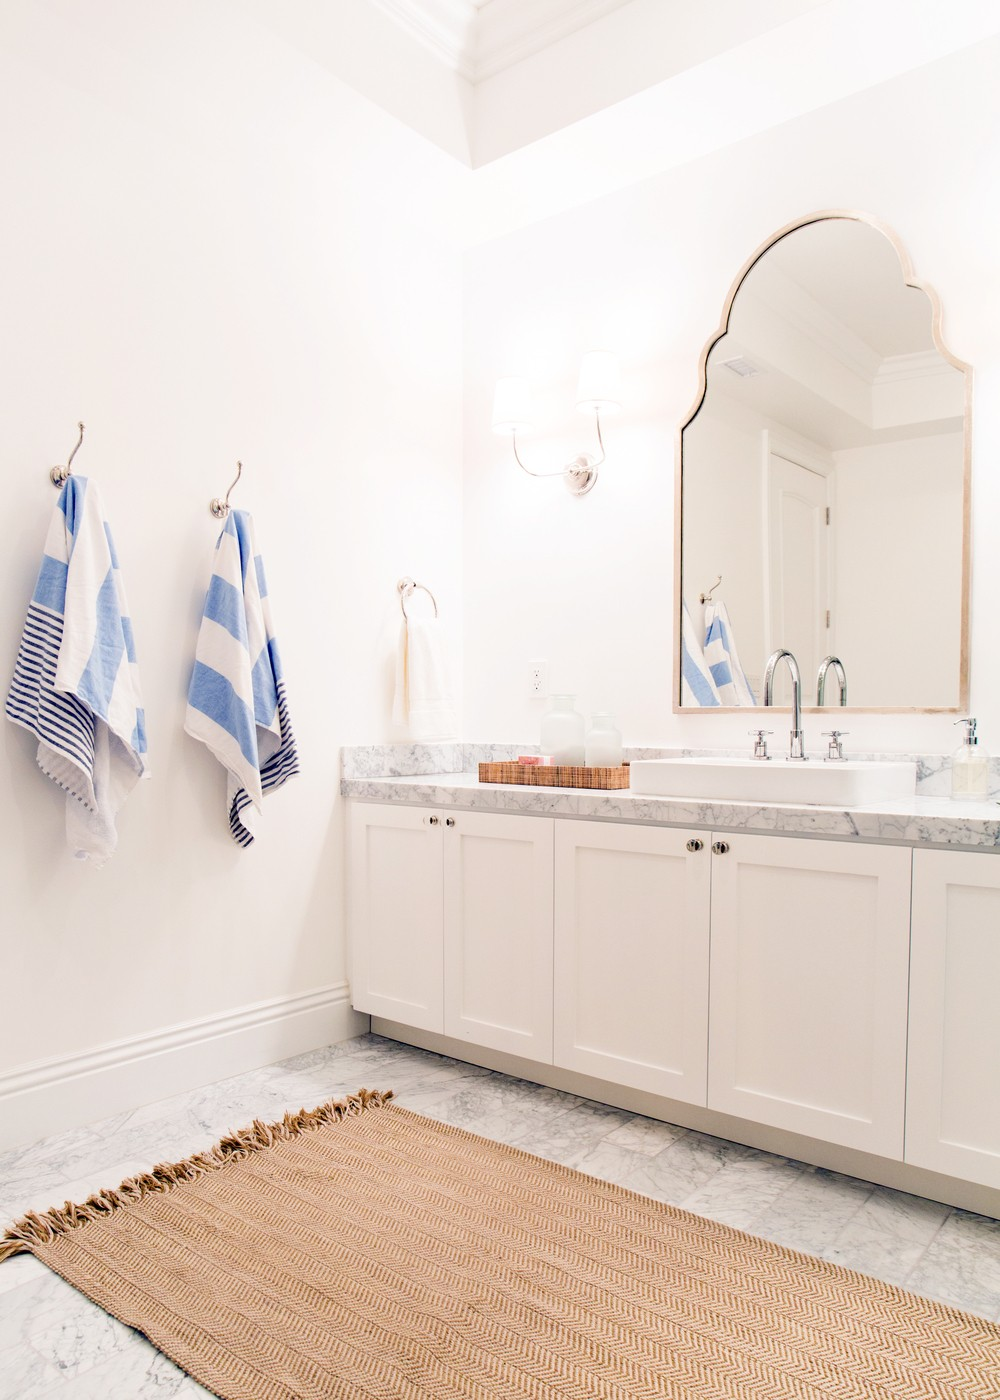 Striped towels in an all-white basement spa bathroom || Studio McGee